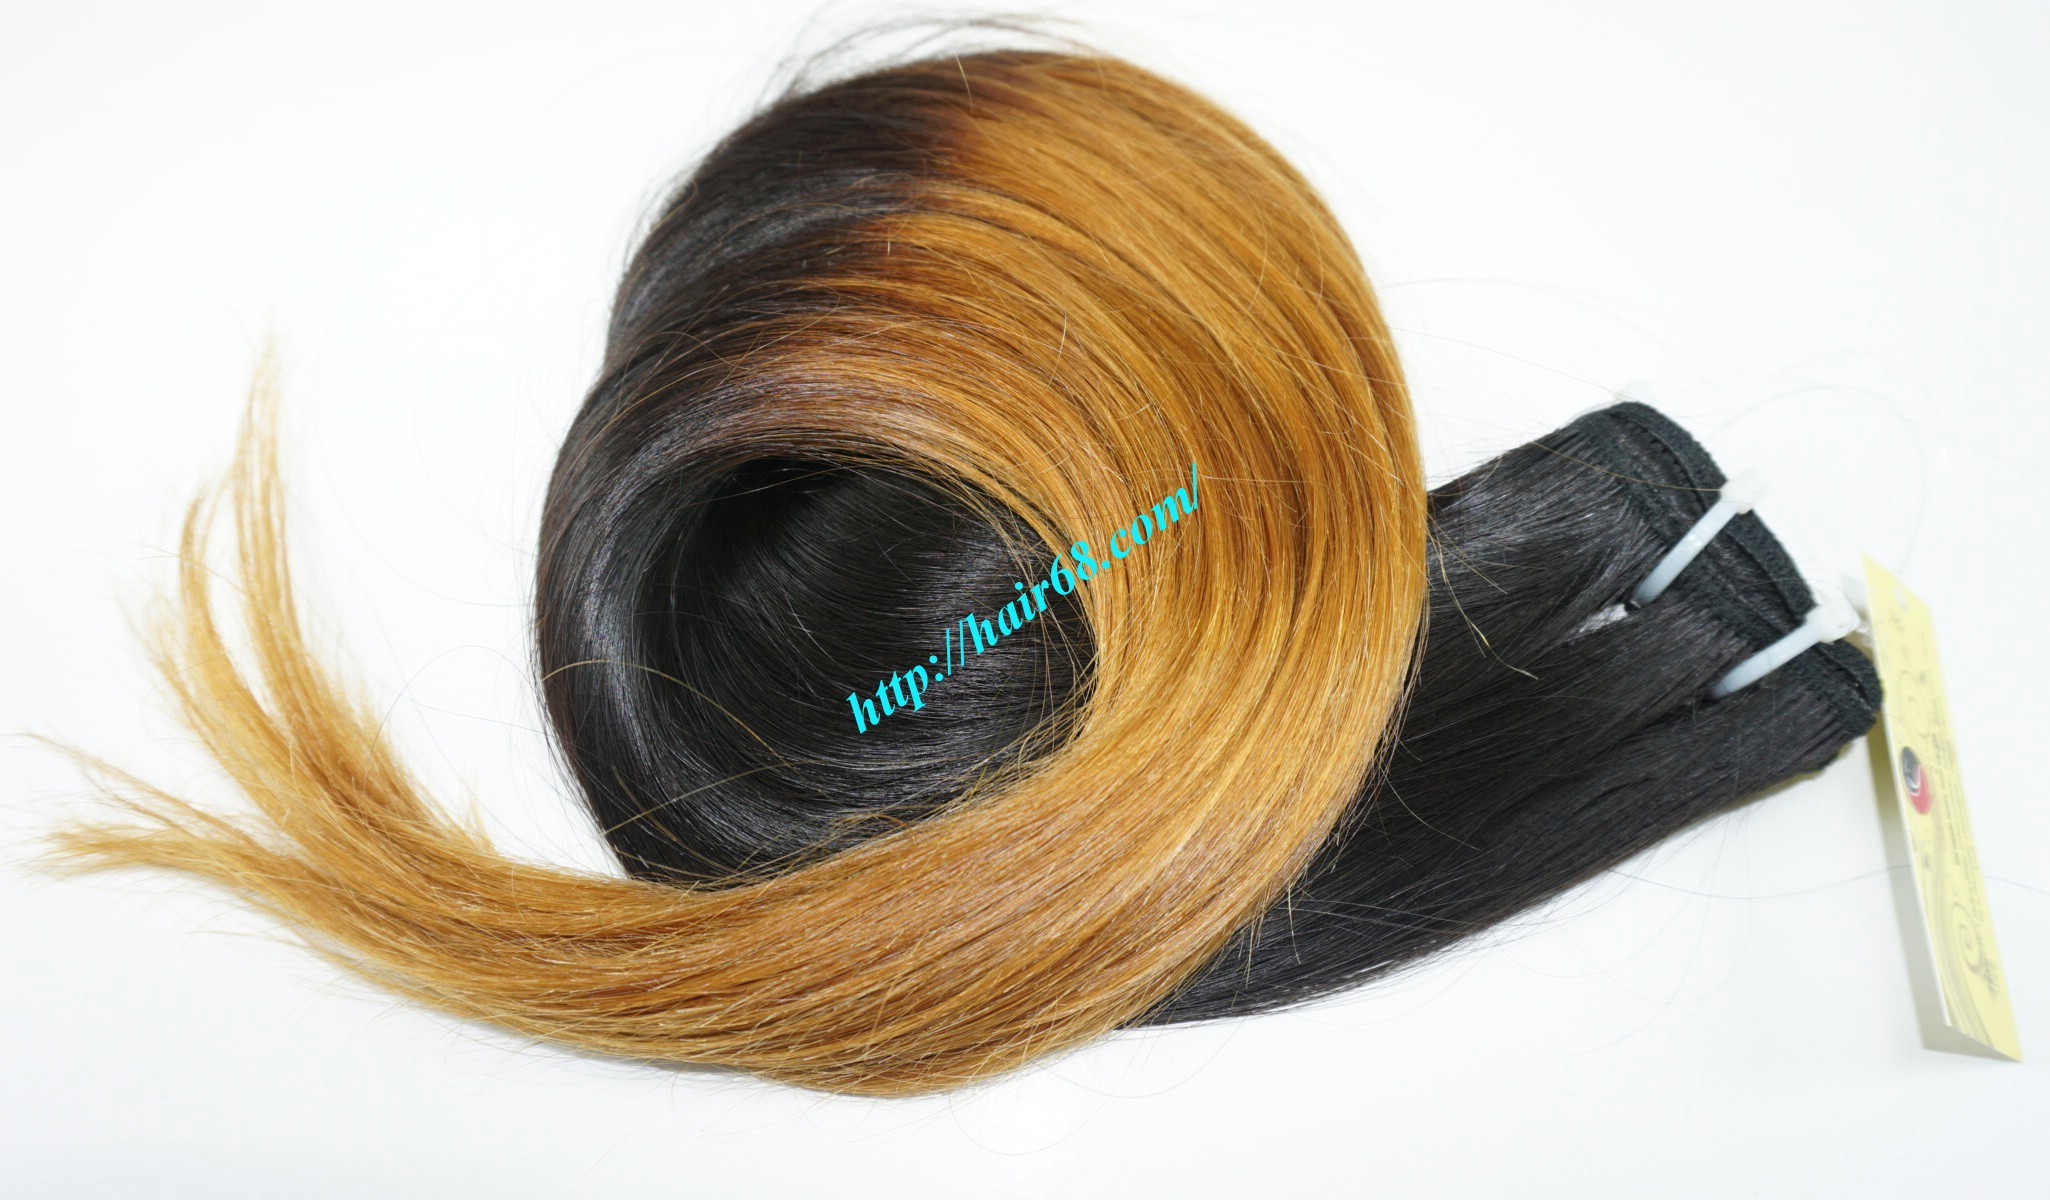 26 inch ombre hair extensions for black hair 9